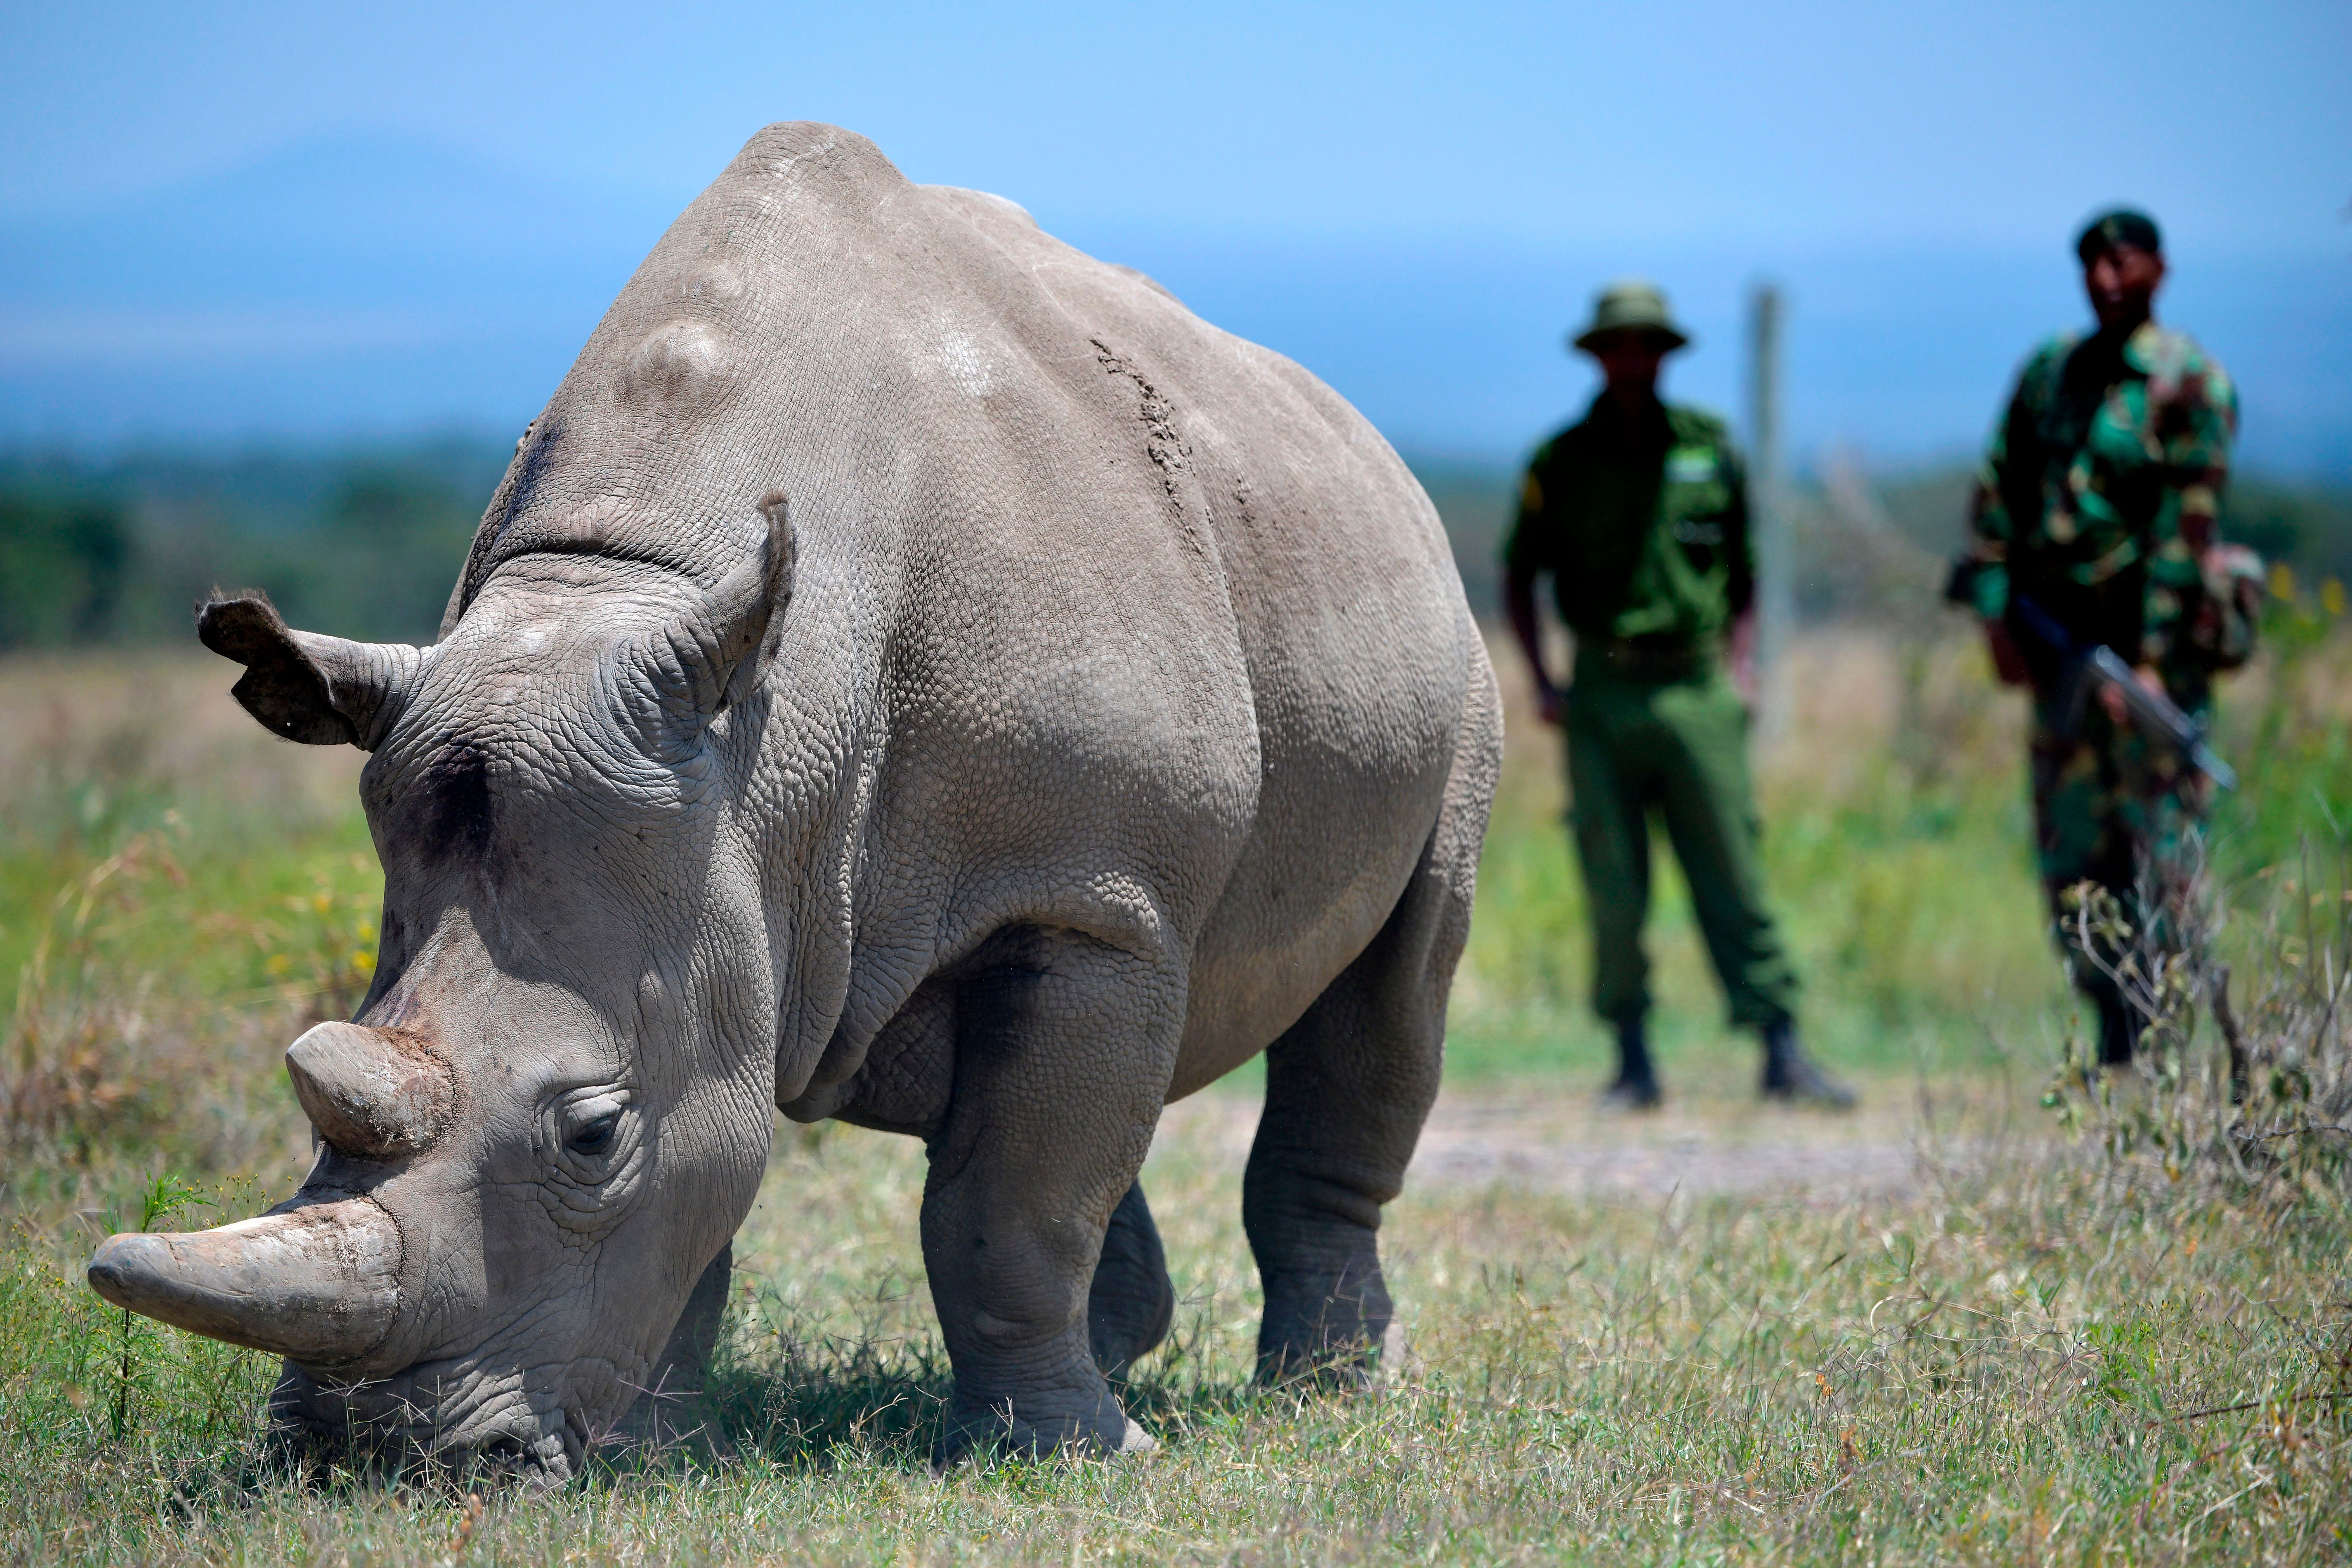 The former naval officer now leading Kenya's fight against poaching